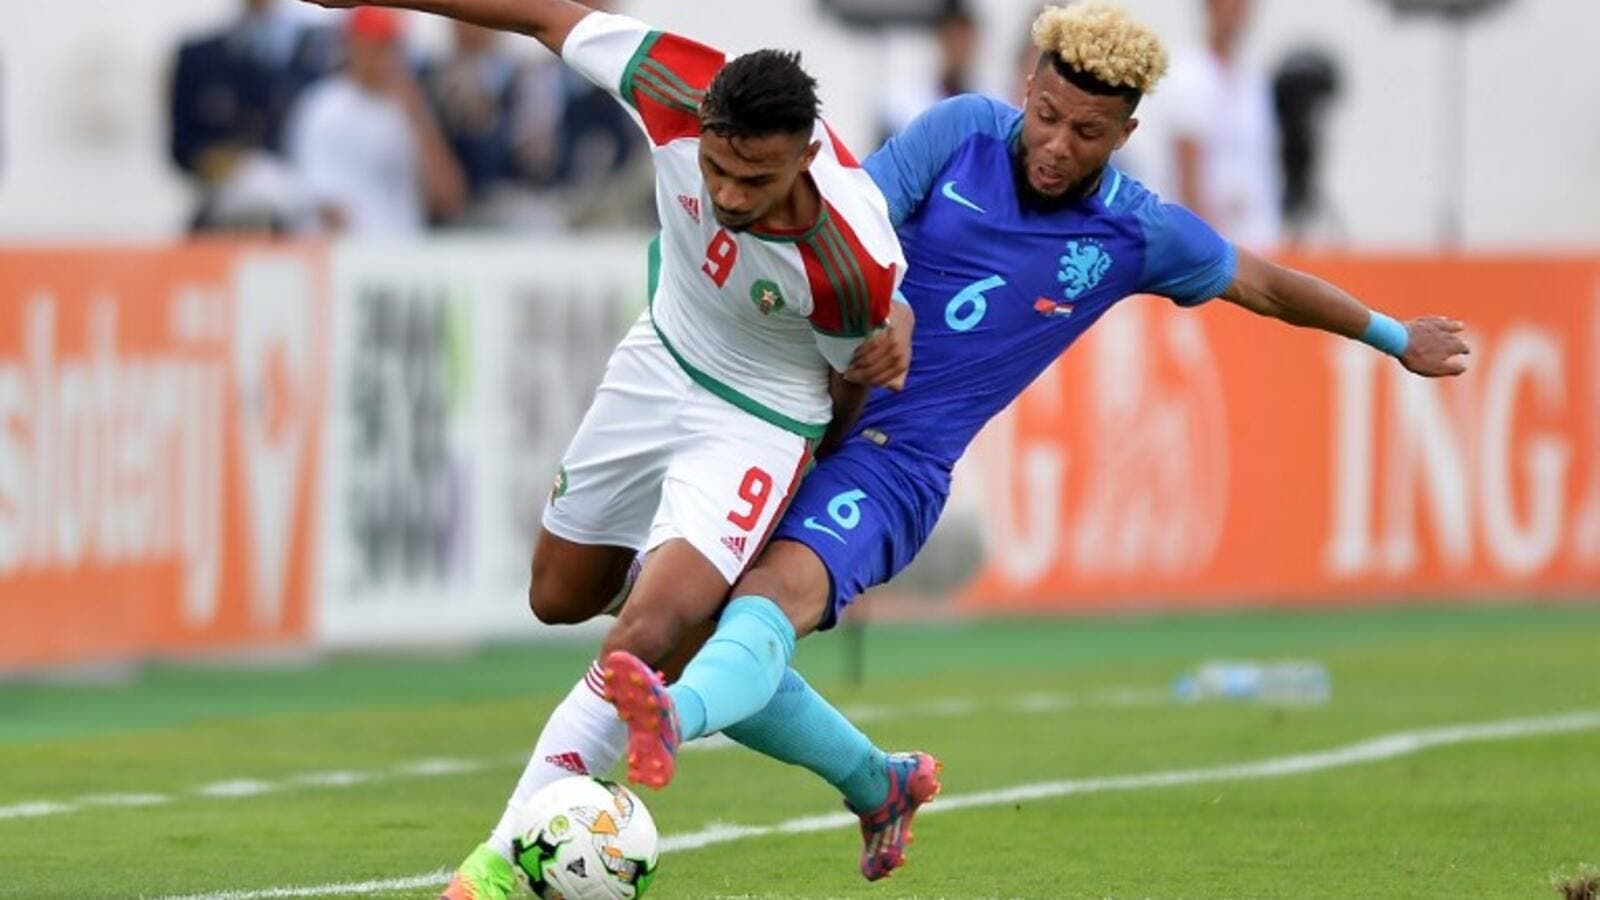 Morocco's Soufian Boufal (L) vies with Netherland's Tonny Vilhena during the international friendly football match between Morocco and Netherlands at in Agadir on May 31, 2017.